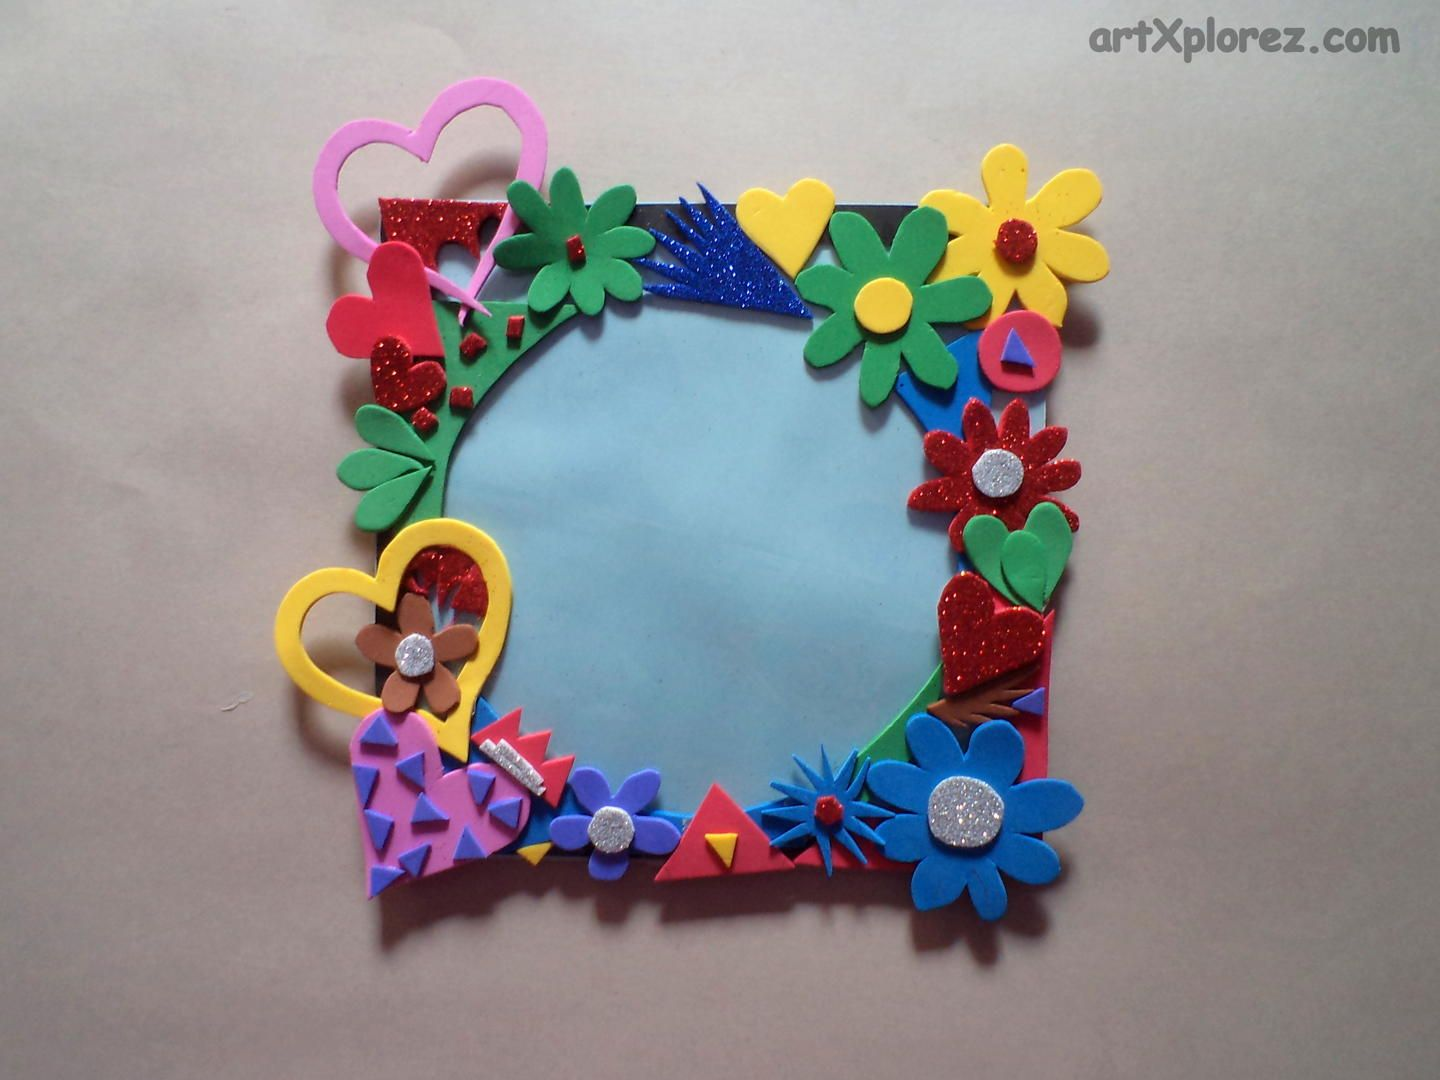 Handmade crafts using waste materials for New handmade craft ideas